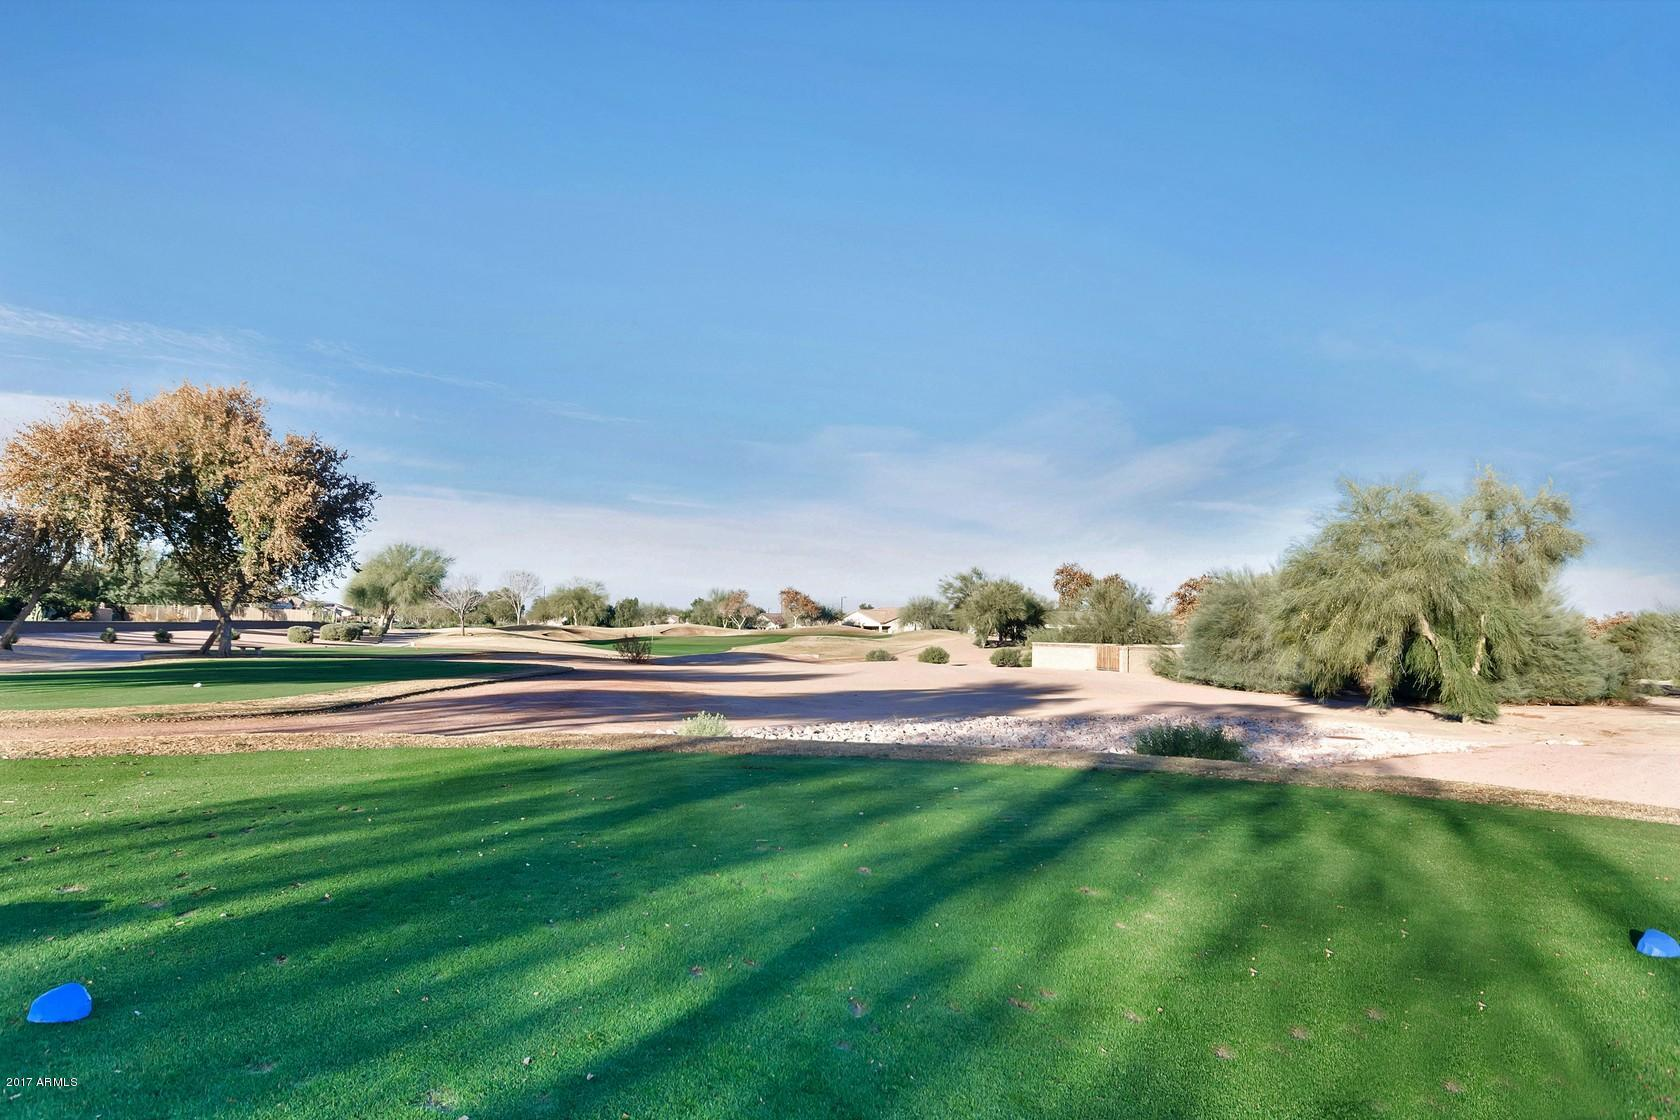 MLS 5838682 4194 E CAROB Drive, Gilbert, AZ 85297 Golf Course Lots